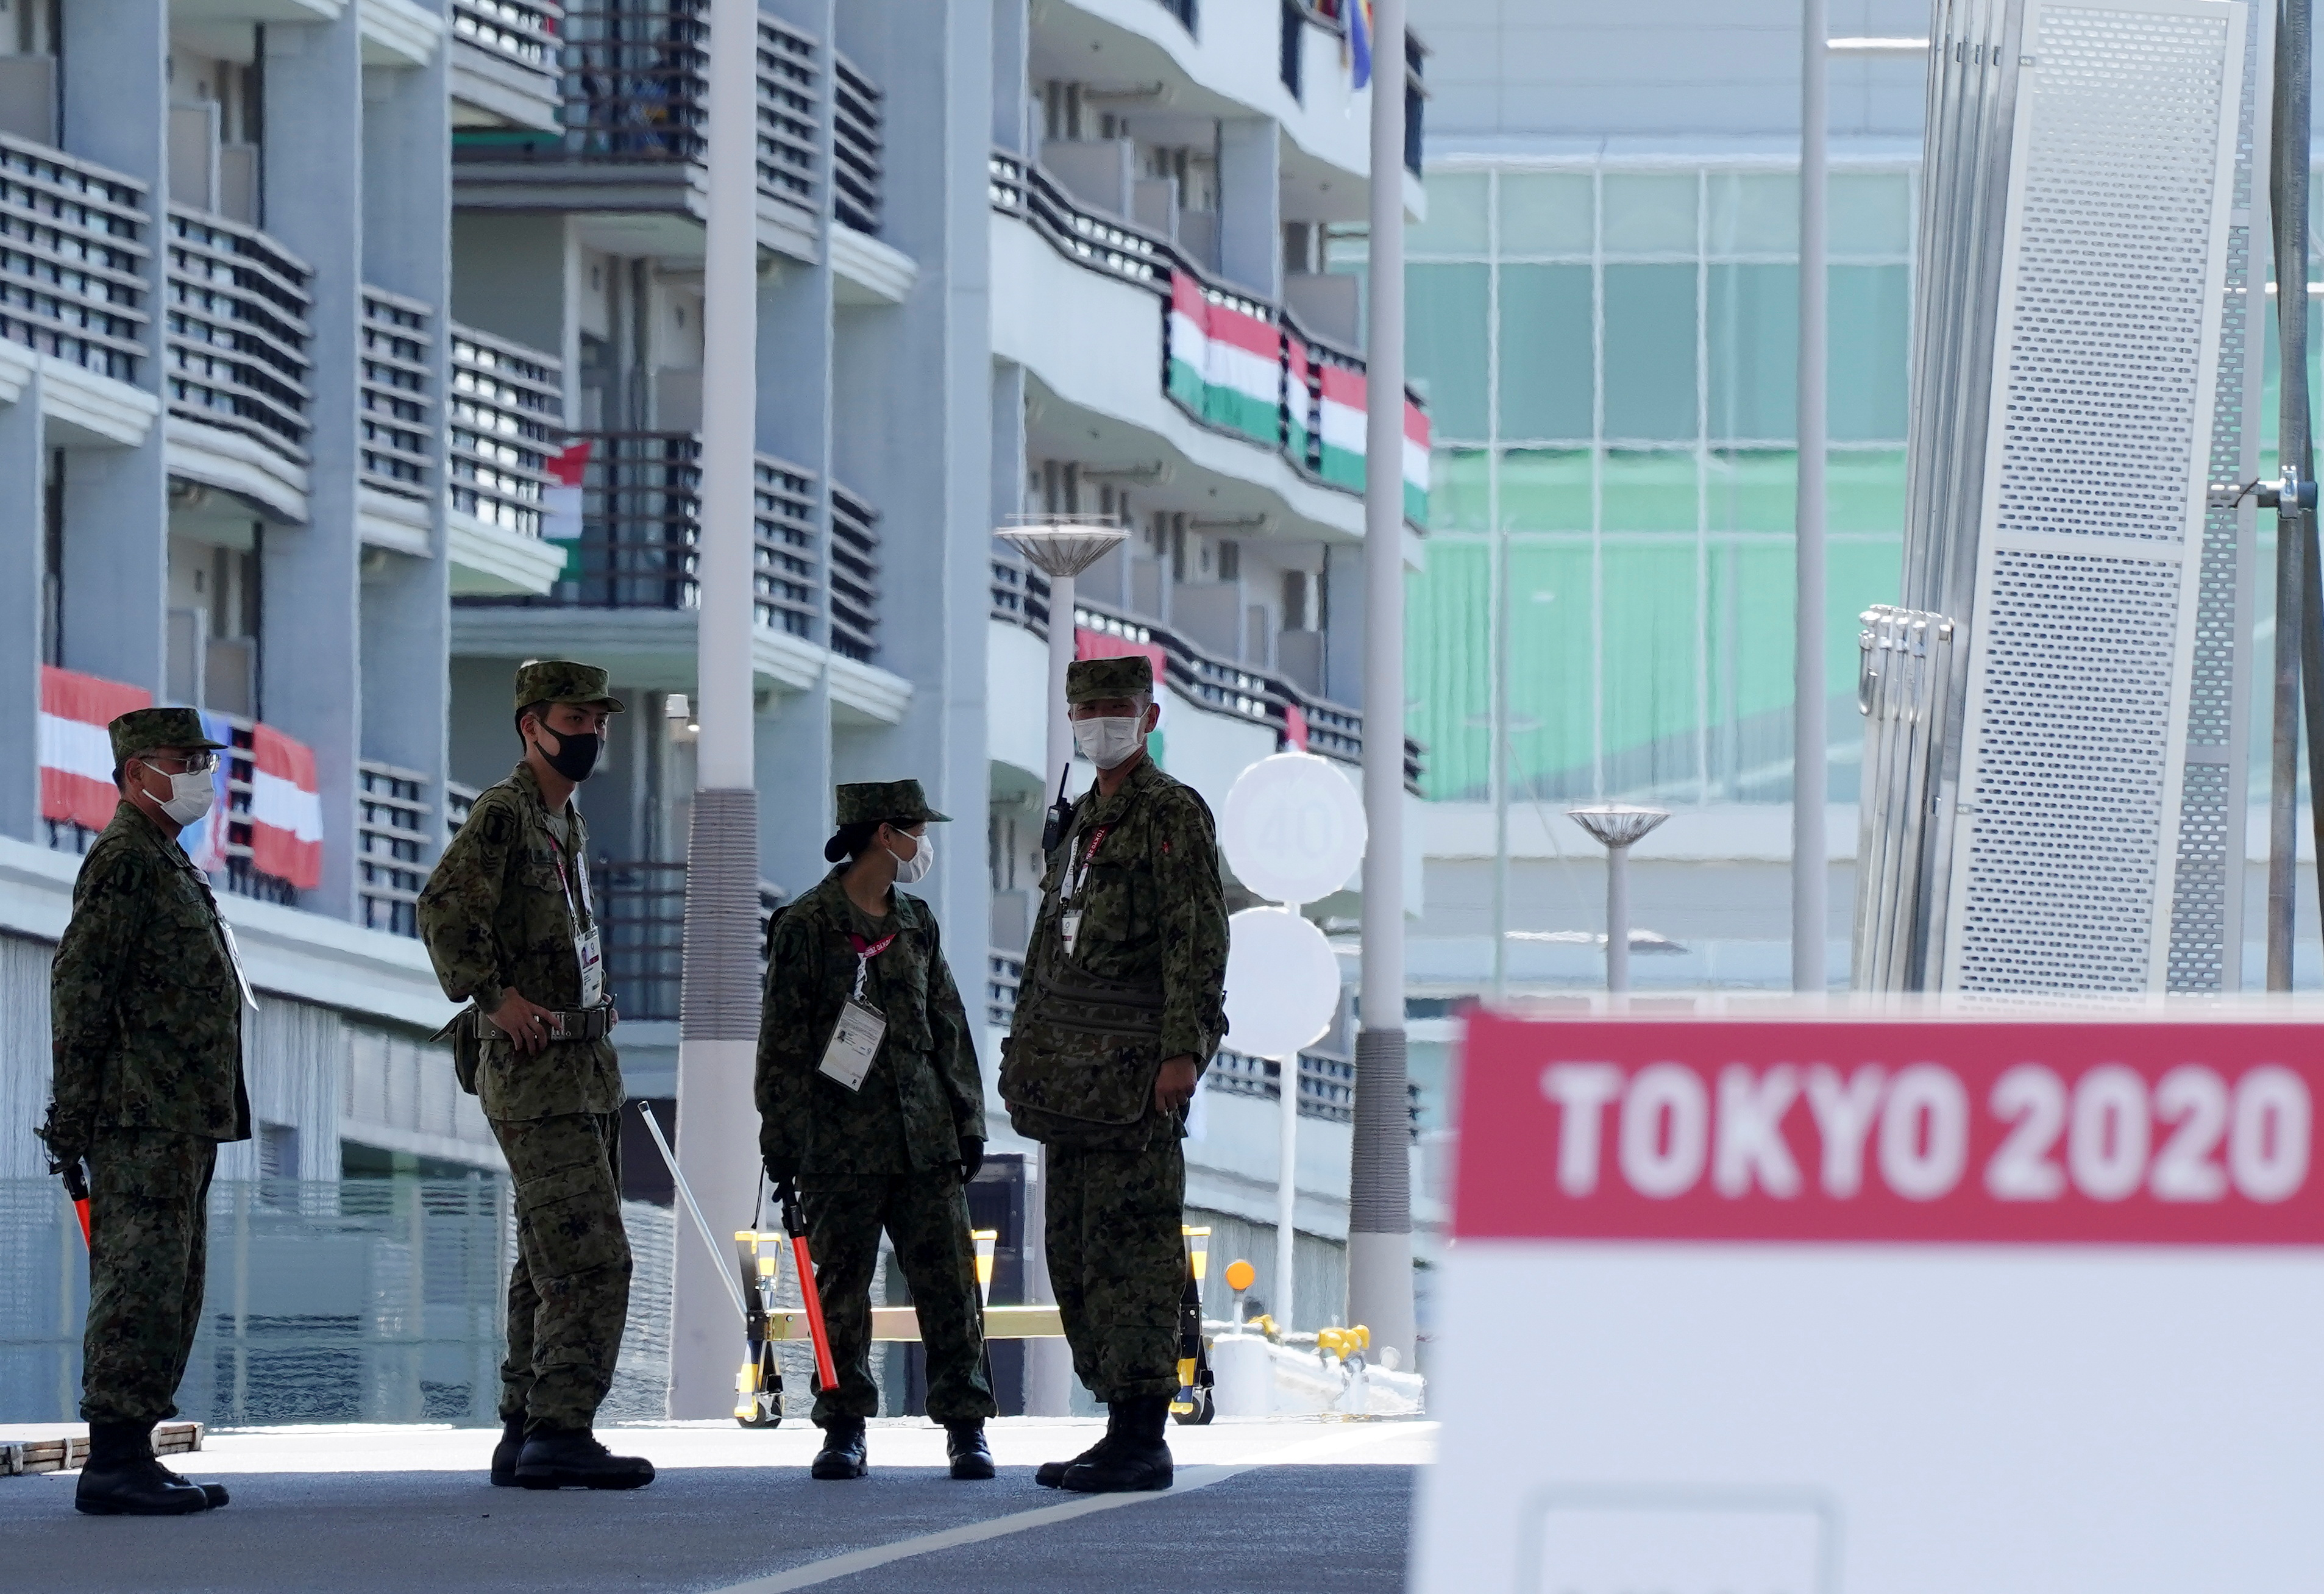 Japan Self-Defense Forces soldiers stand guard at the athletes' village for the Tokyo 2020 Olympic Games, in Tokyo, Japan, July 22, 2021. REUTERS/Naoki Ogura